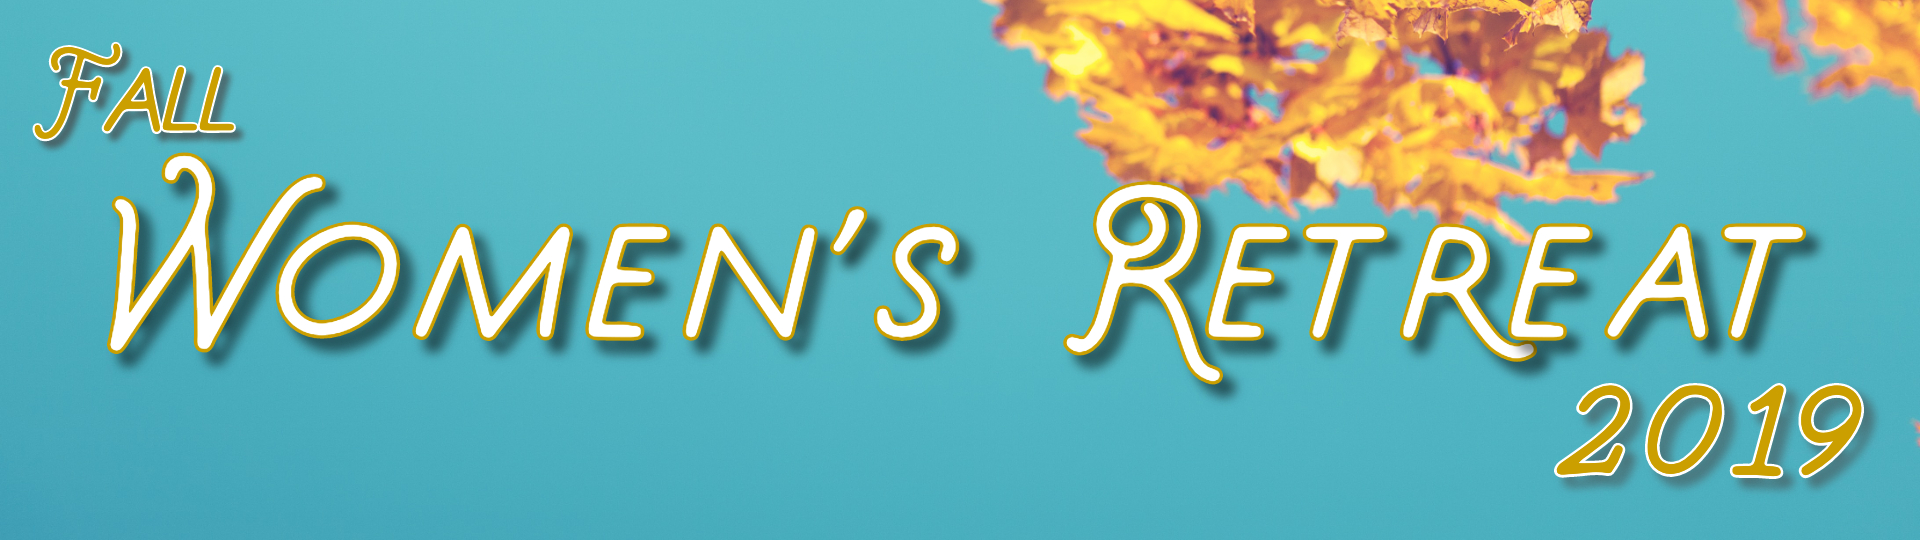 Fall Women's Retreat 2019 Banner